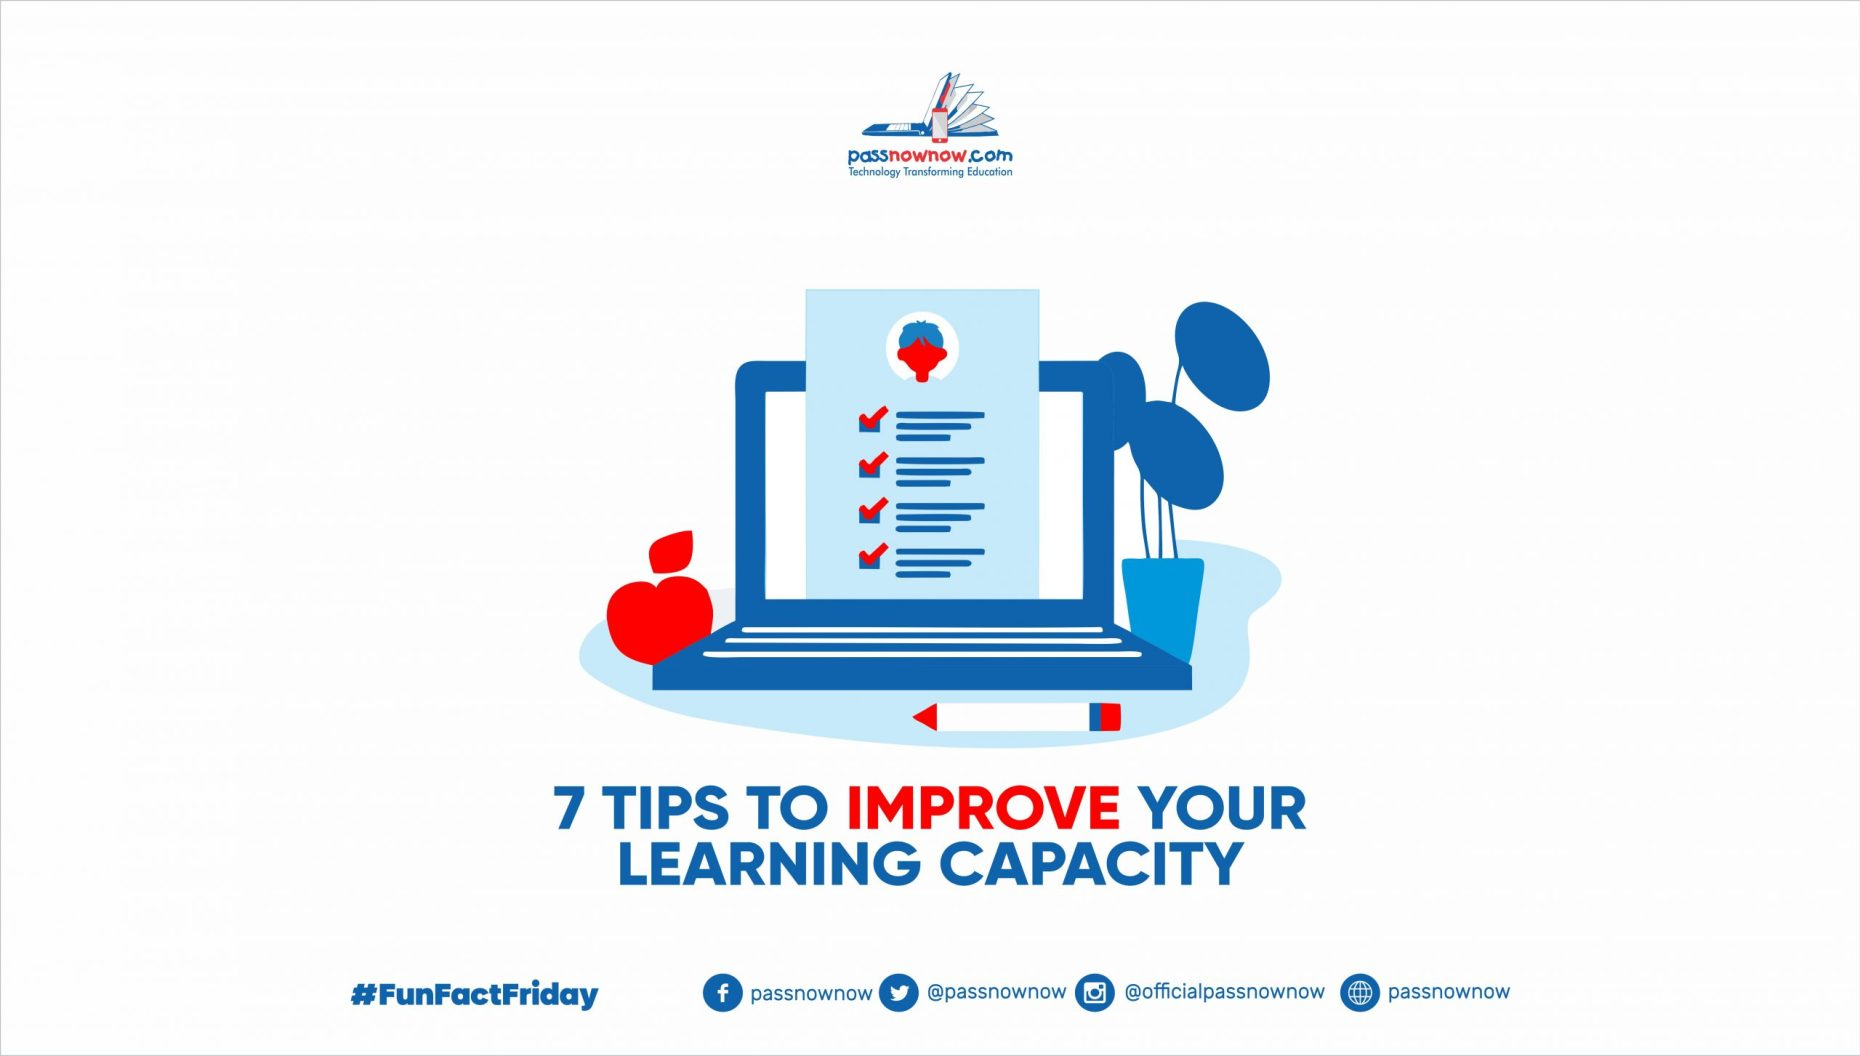 7 tips to improve your learning capacity